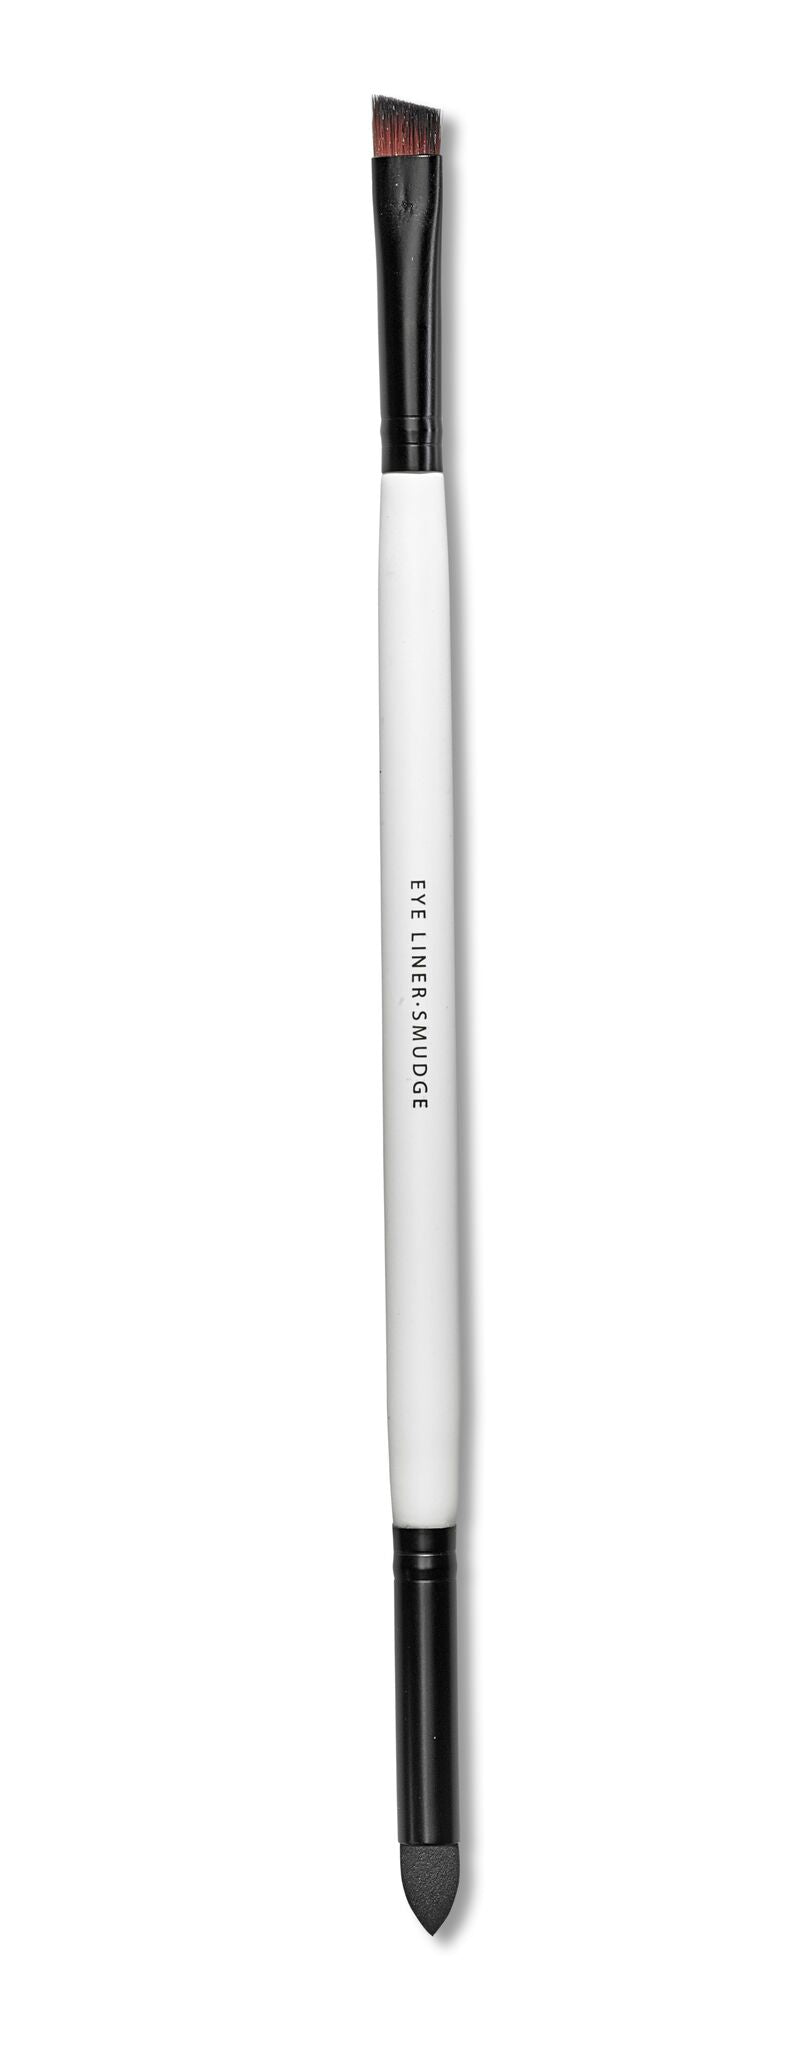 Lily Lolo Eye Liner – Smudge Brush